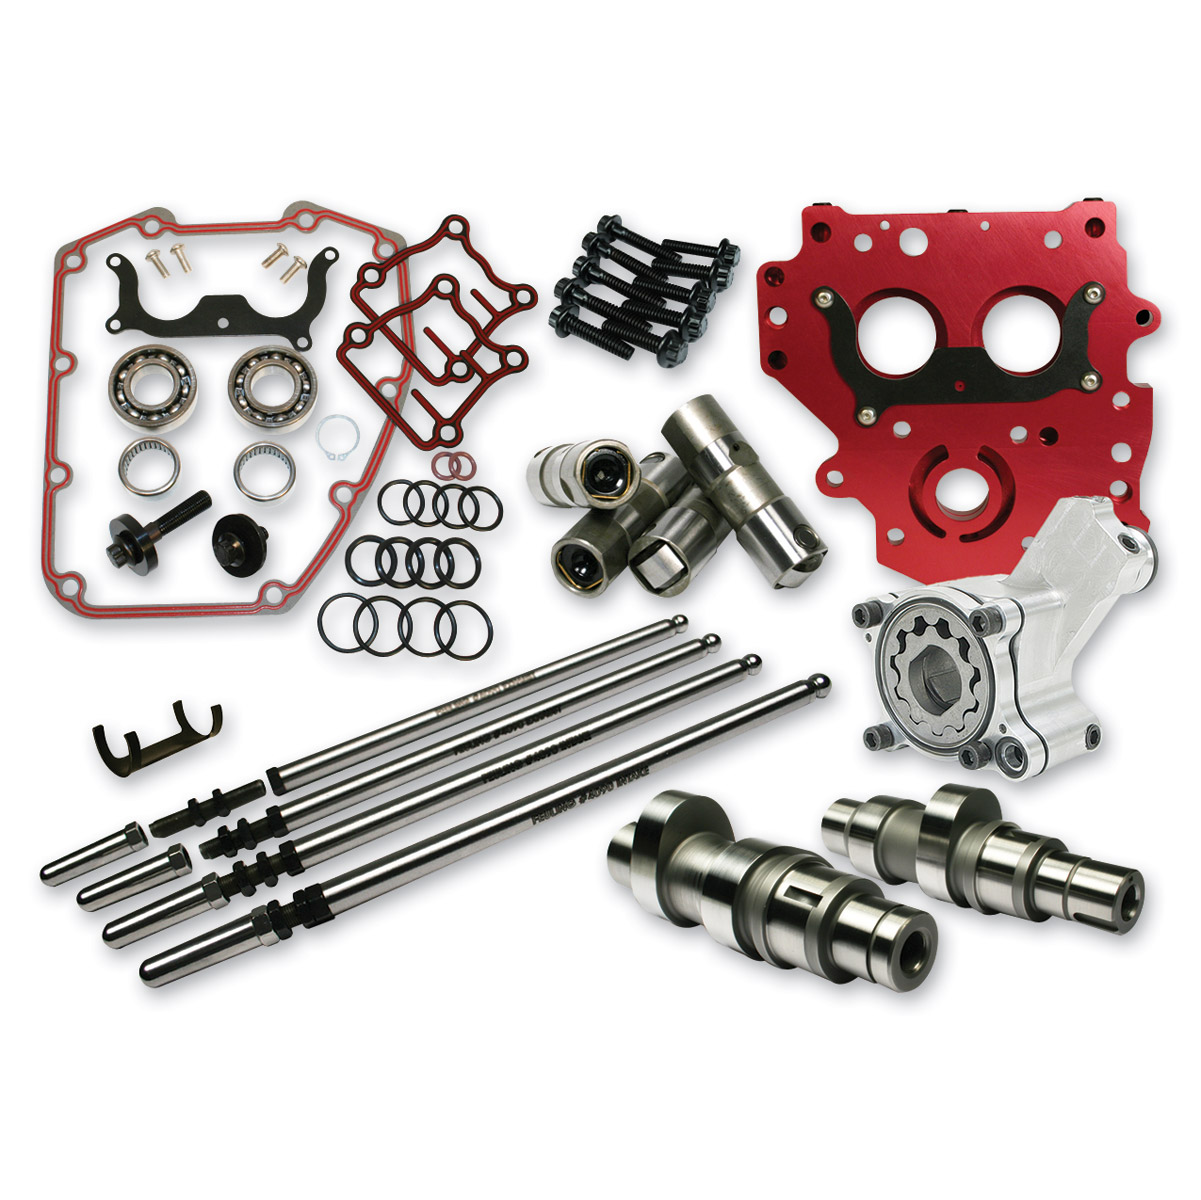 Feuling HP+ 525 Cam Chest Gear Drive Kit